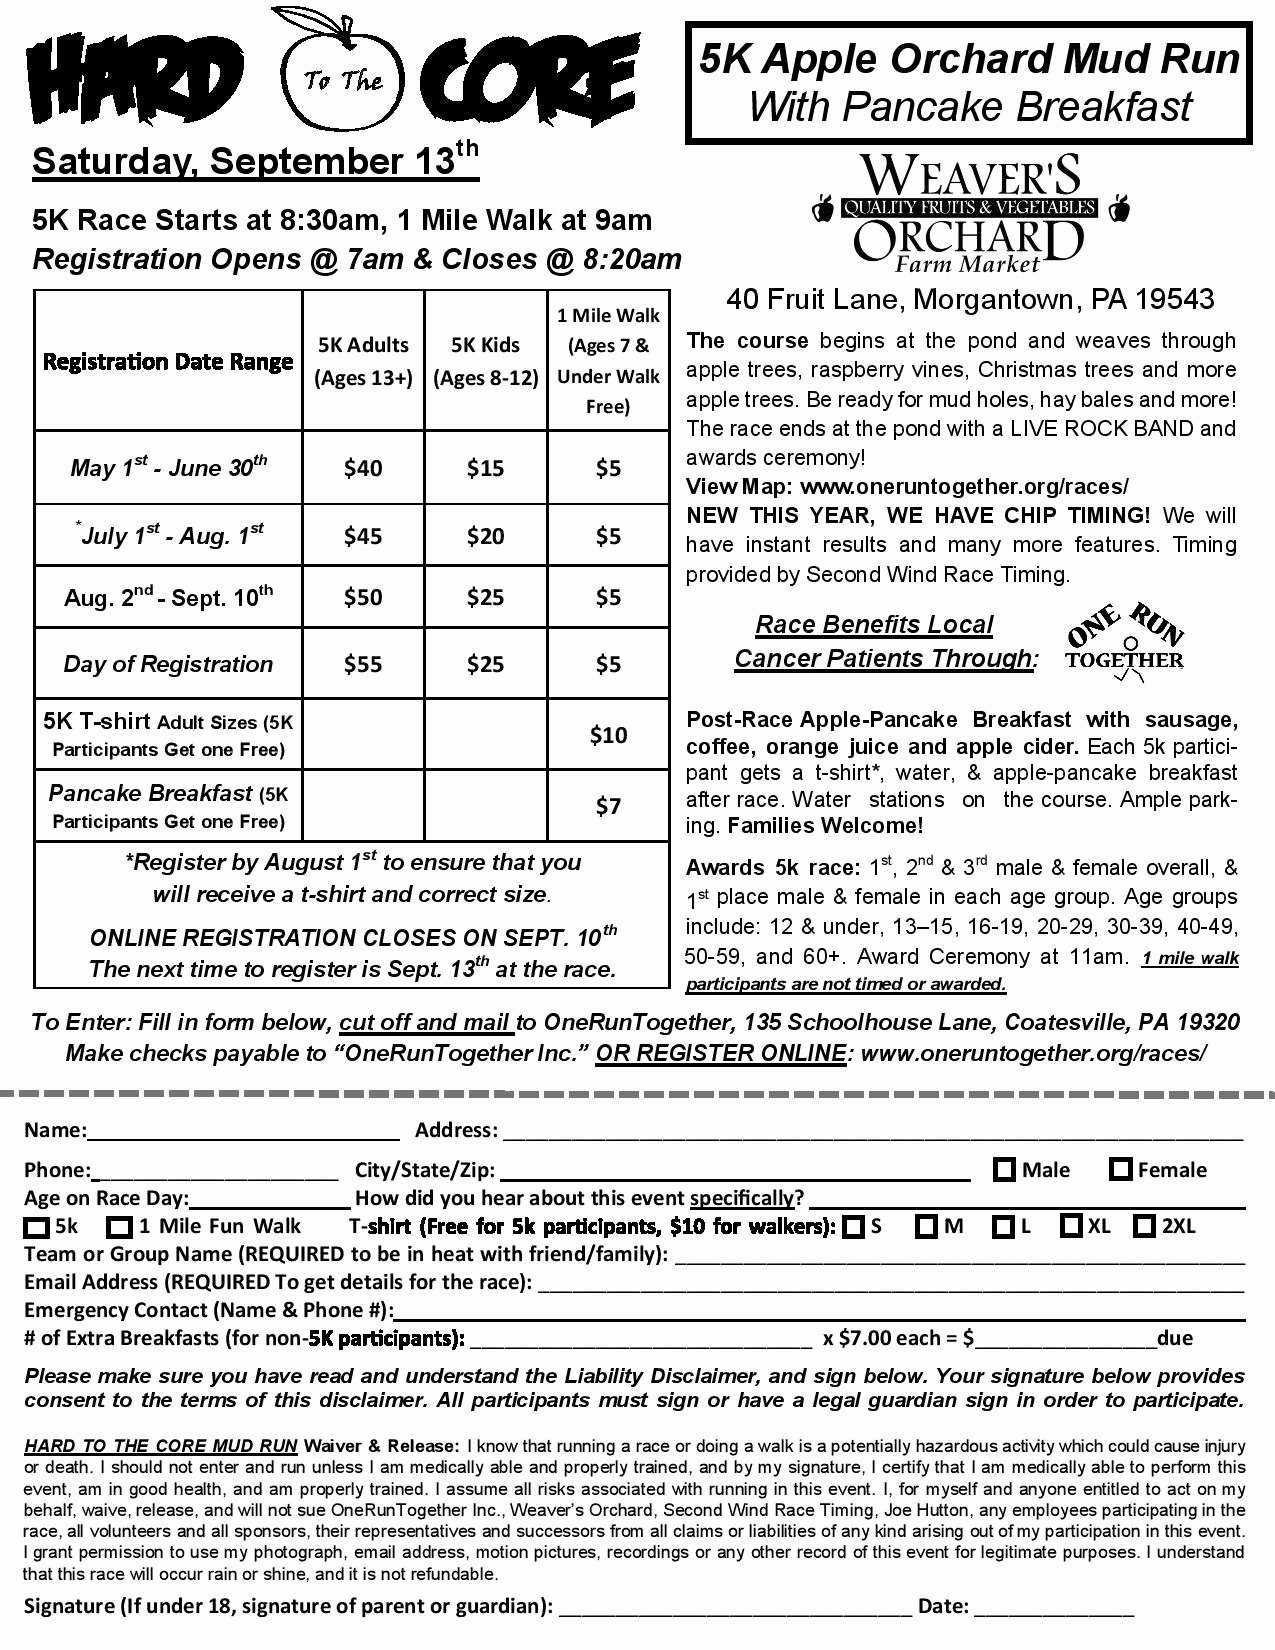 5k Race Registration form Template Fresh 5k Registration forms or forms are Available at Bicycleworks Sportseller and Bermuda Cancer and